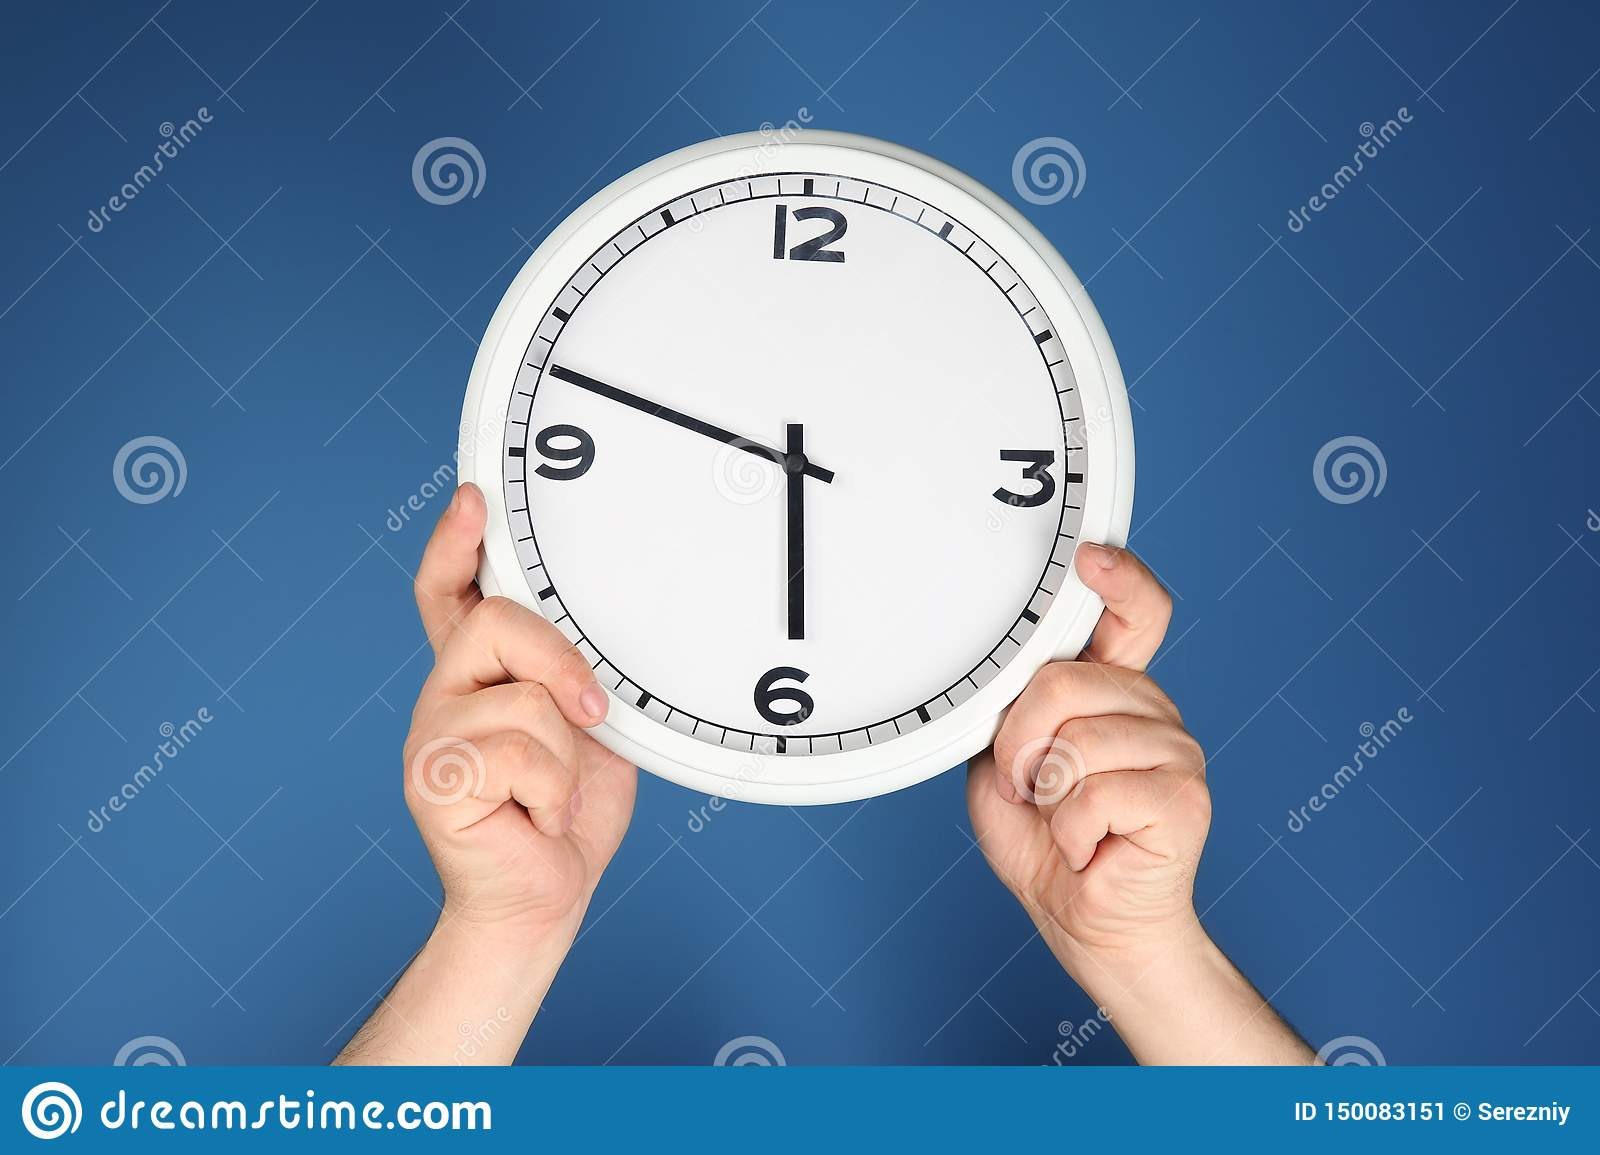 Male hands with clock on color background. Time management concept